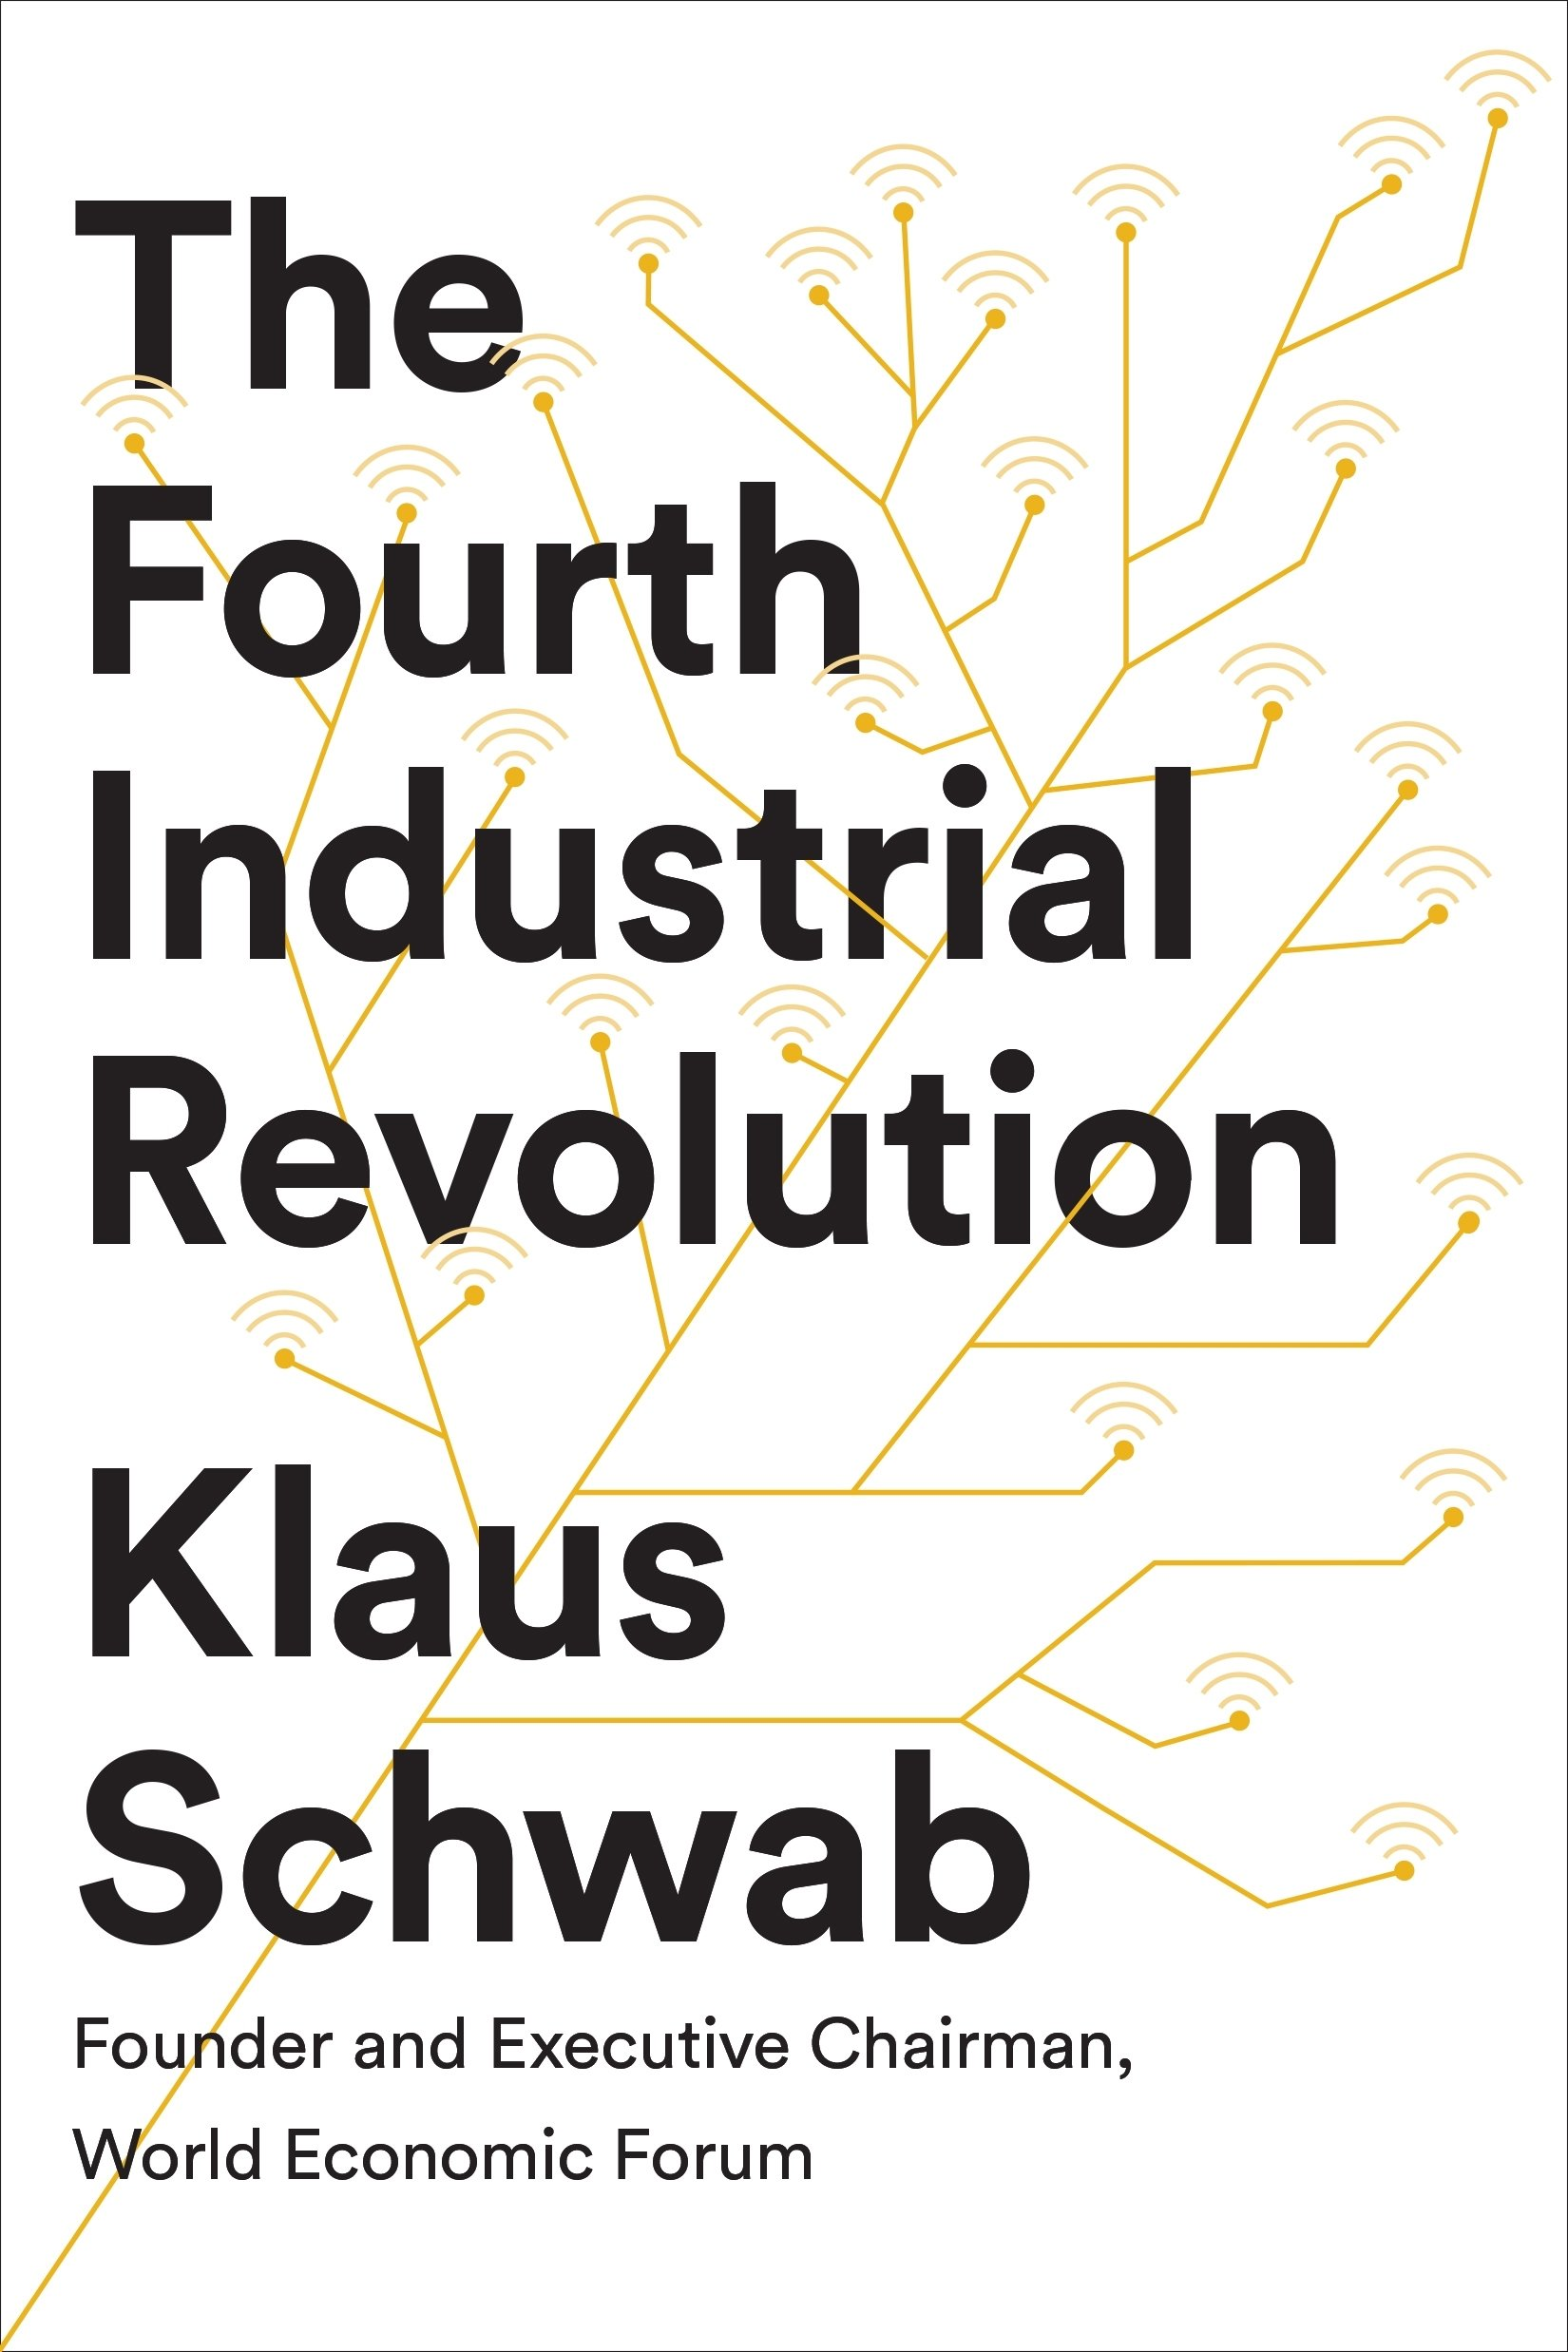 Image OfThe Fourth Industrial Revolution